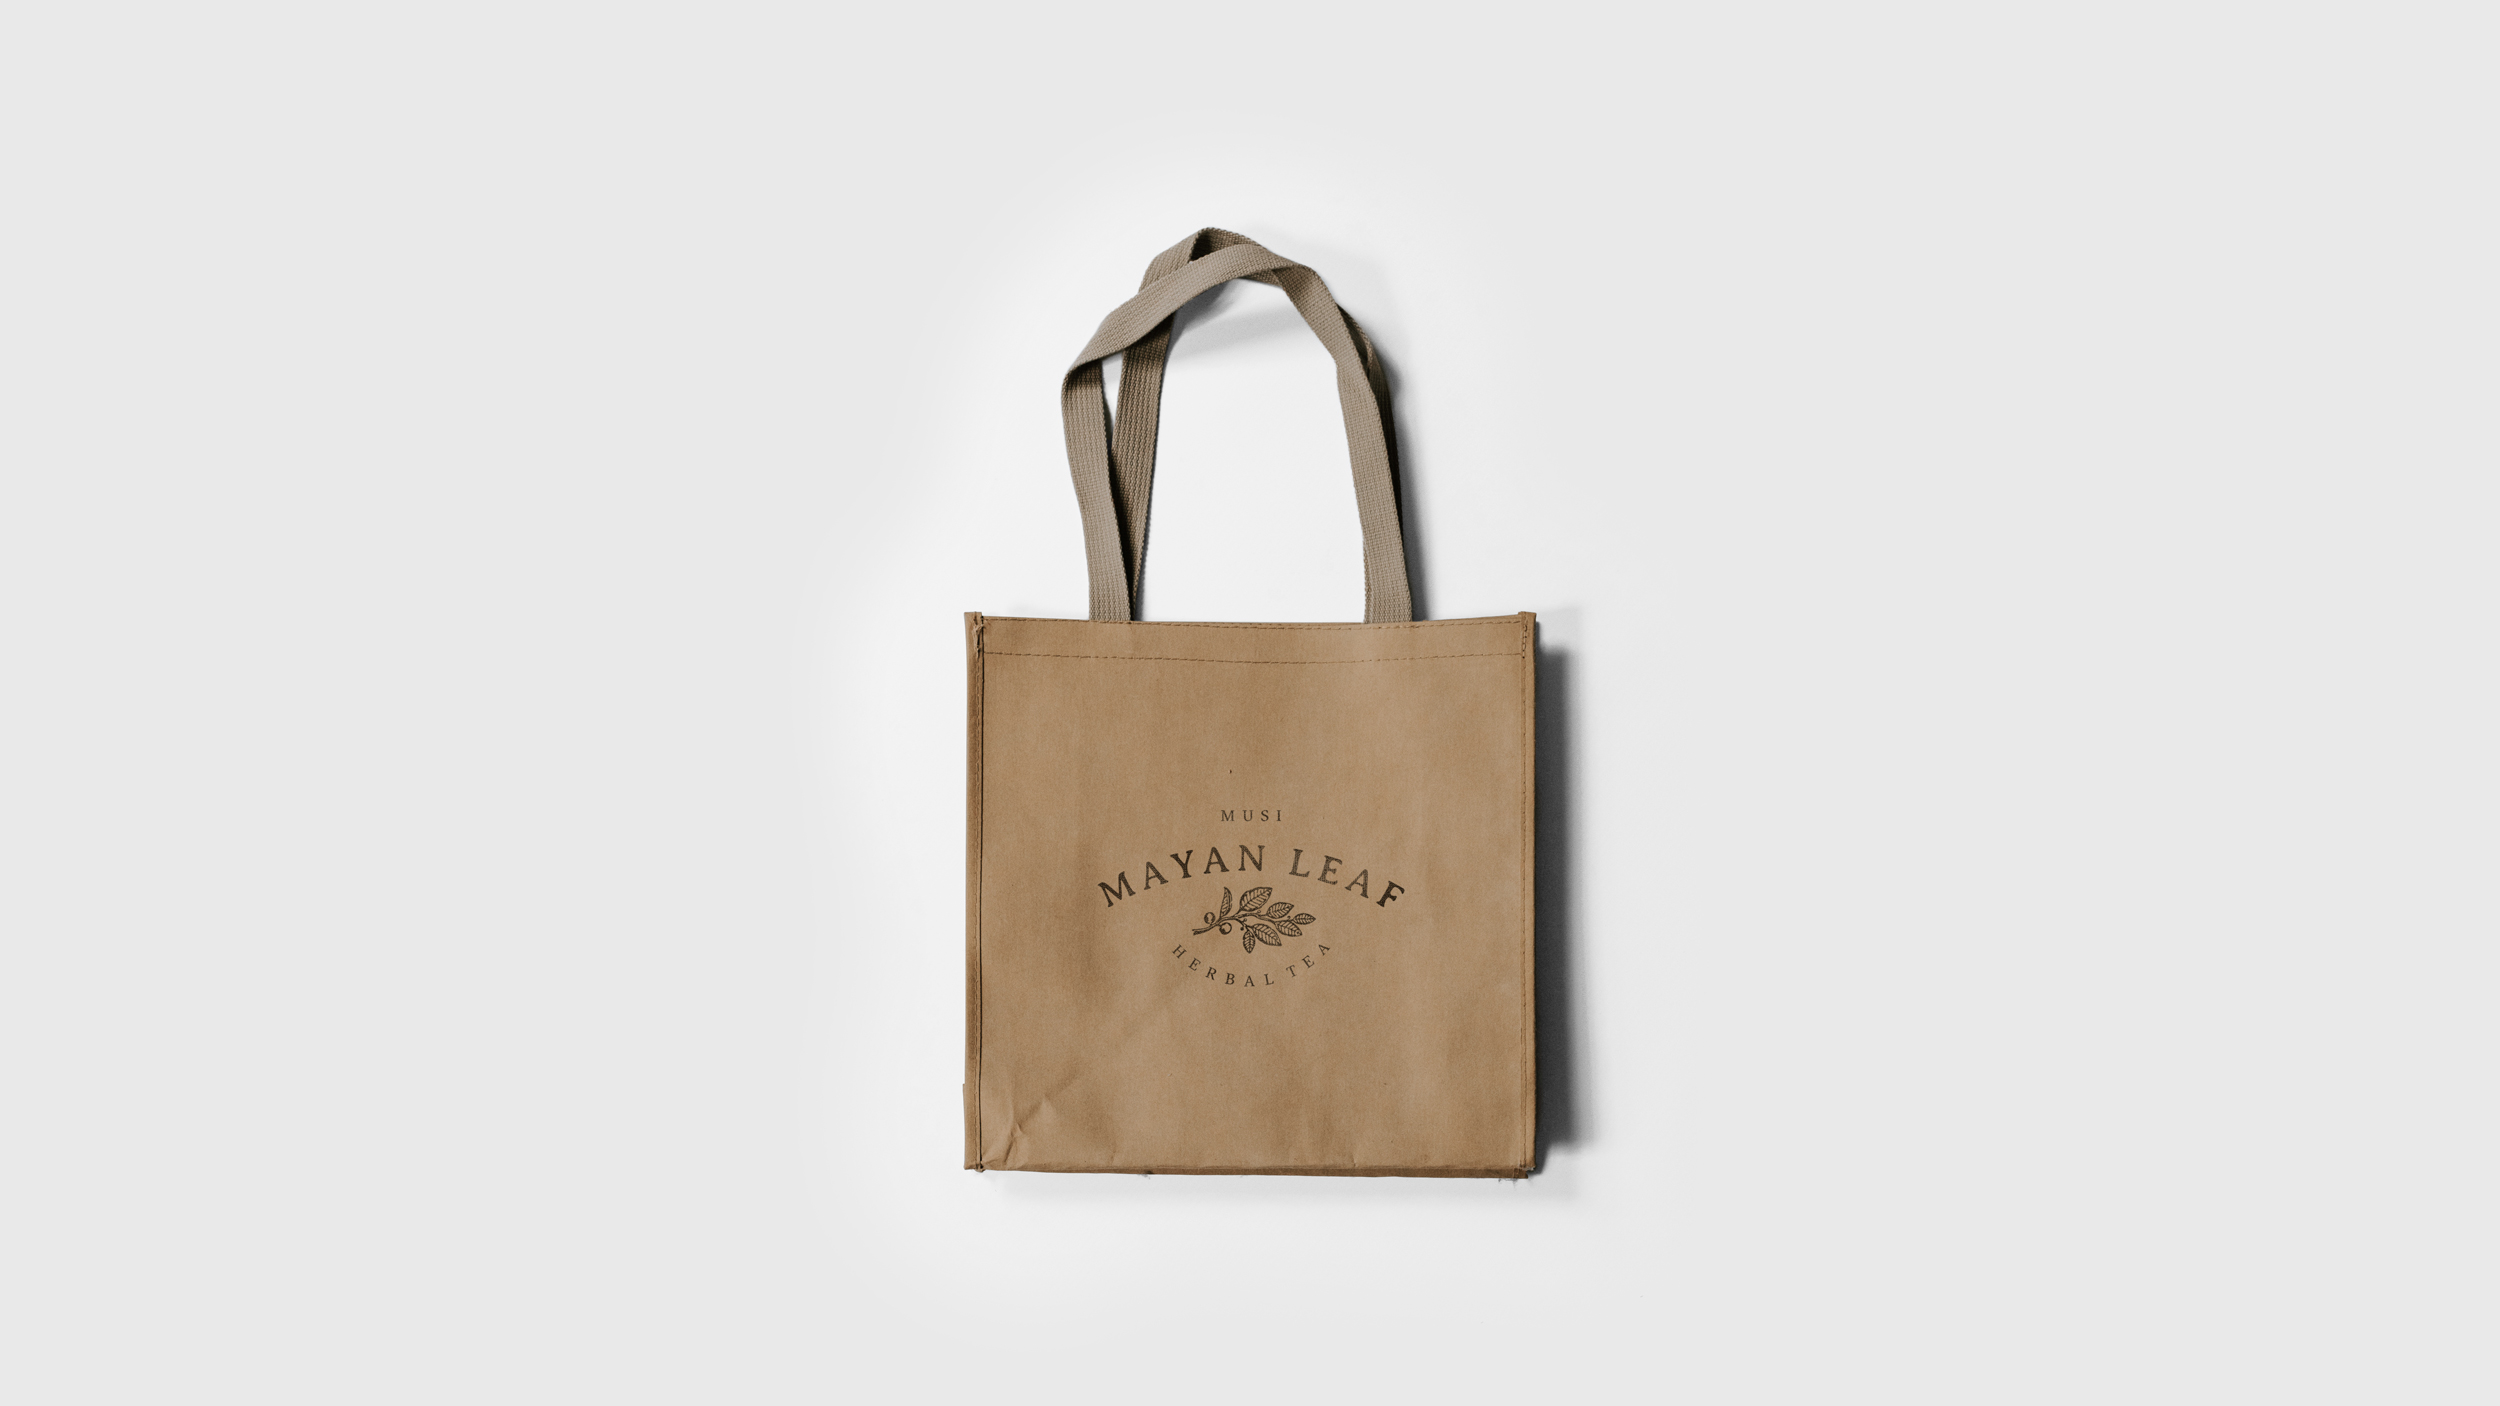 ML_Tote-Bag.jpg